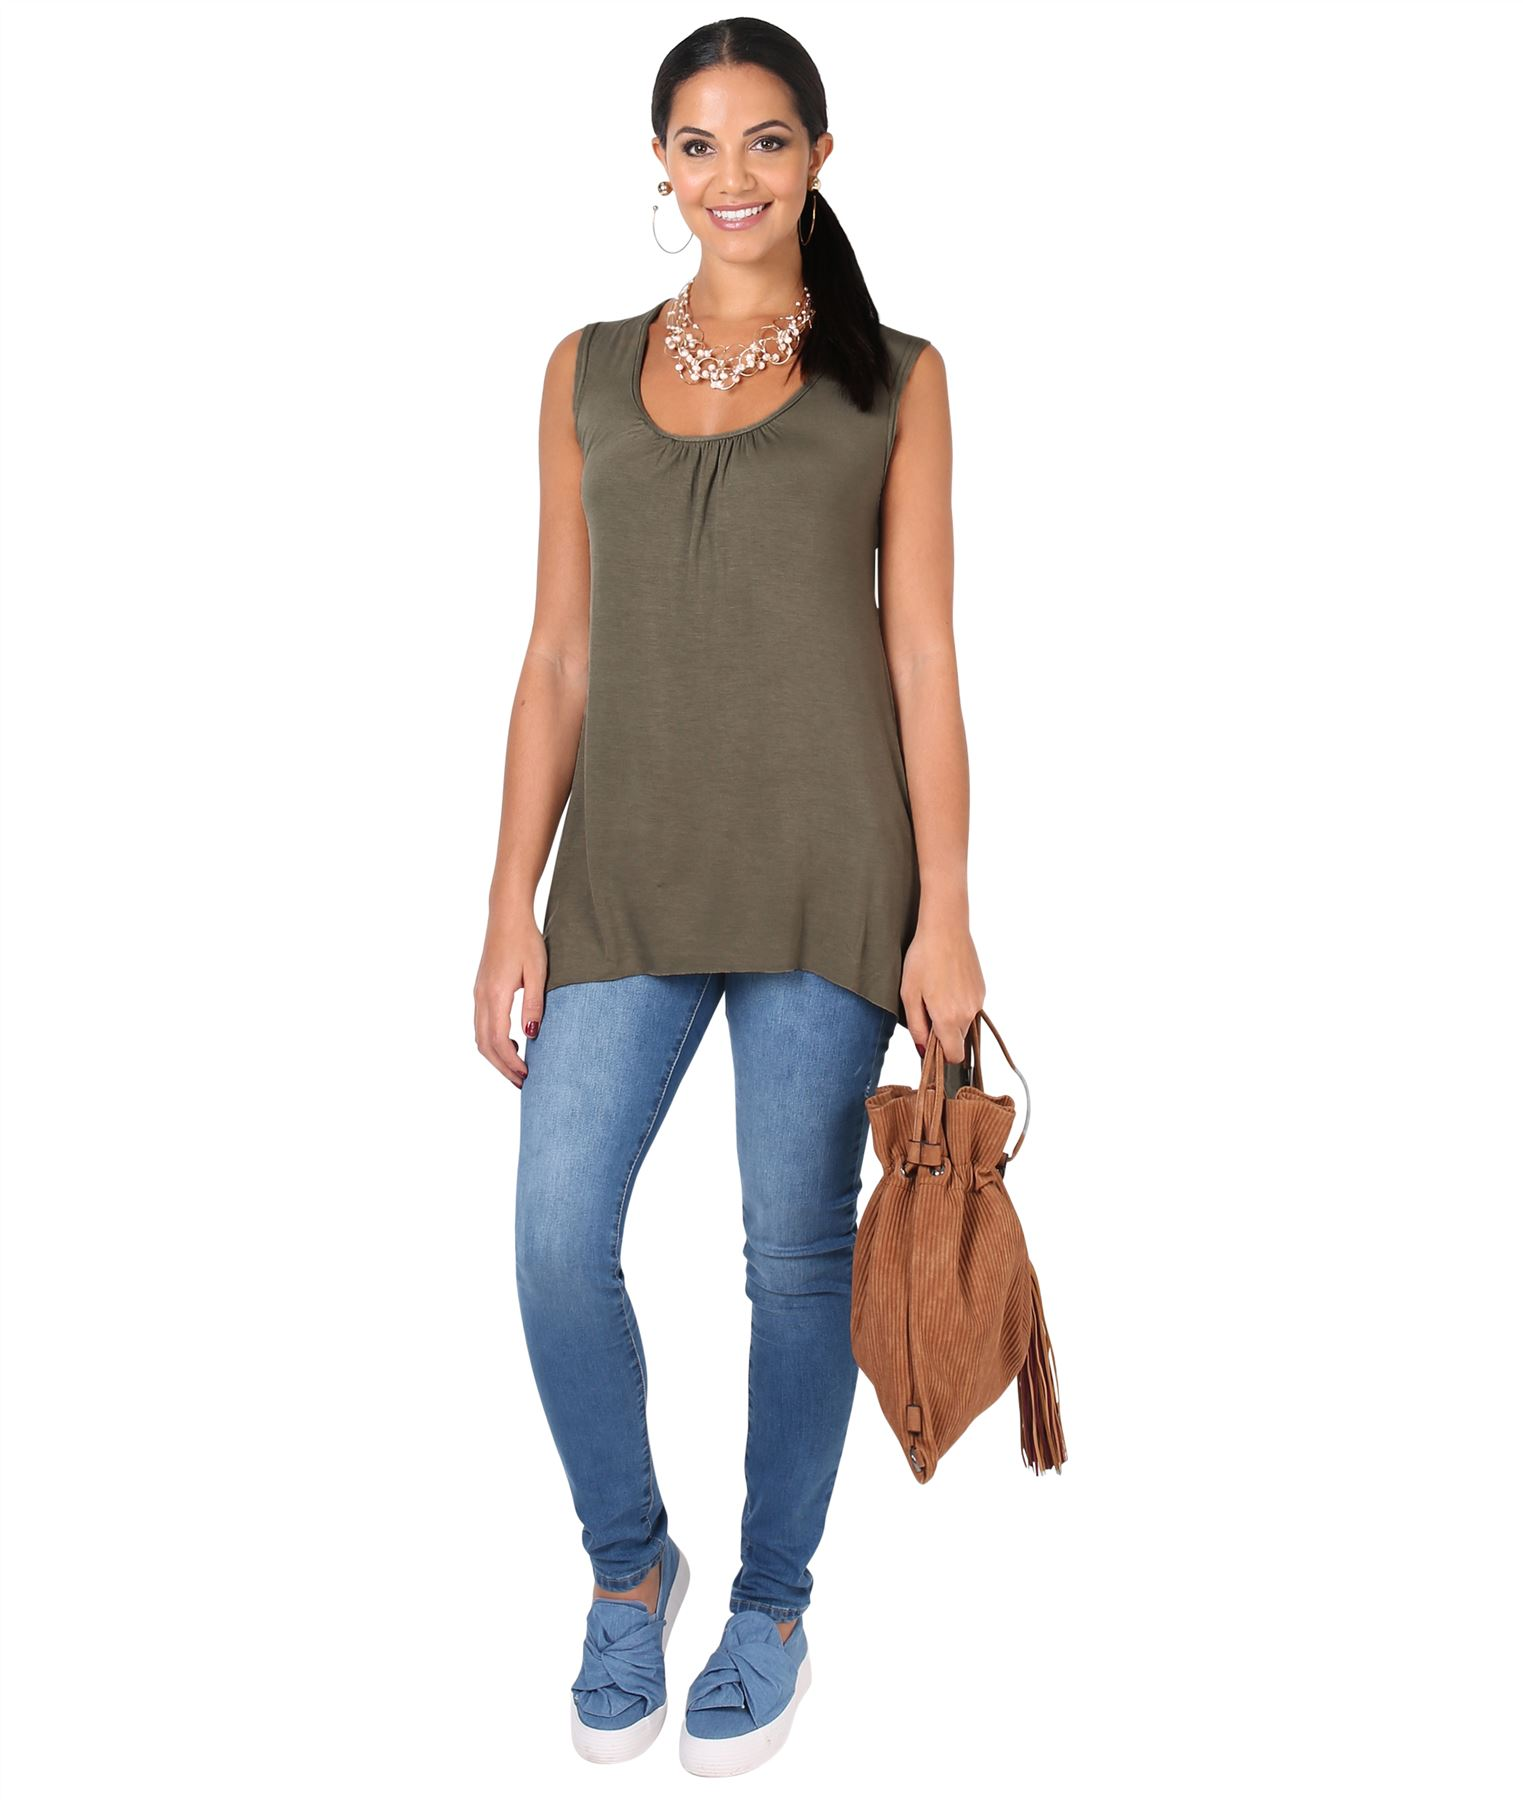 Women-Long-Top-Sleeveless-Pleated-Tee-Shirt-Tunic-Jersey-Stretch-Loose-Fit thumbnail 13